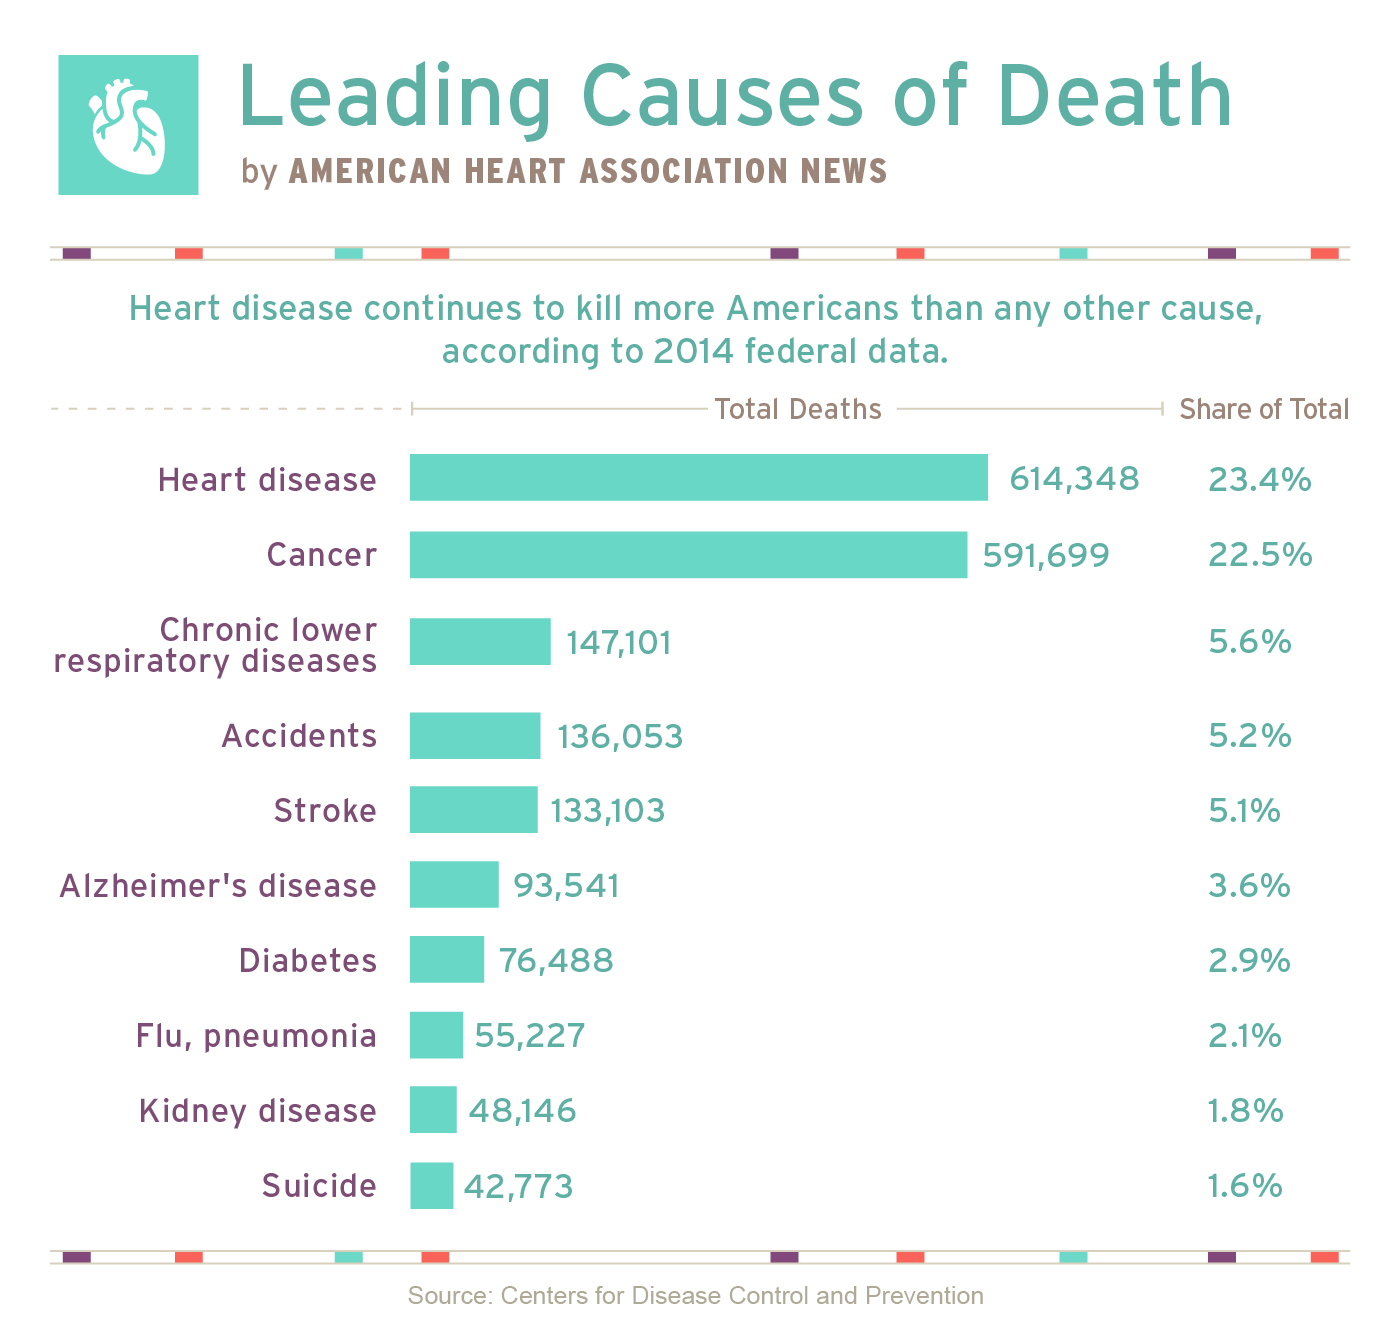 AHA leading causes of death 2014